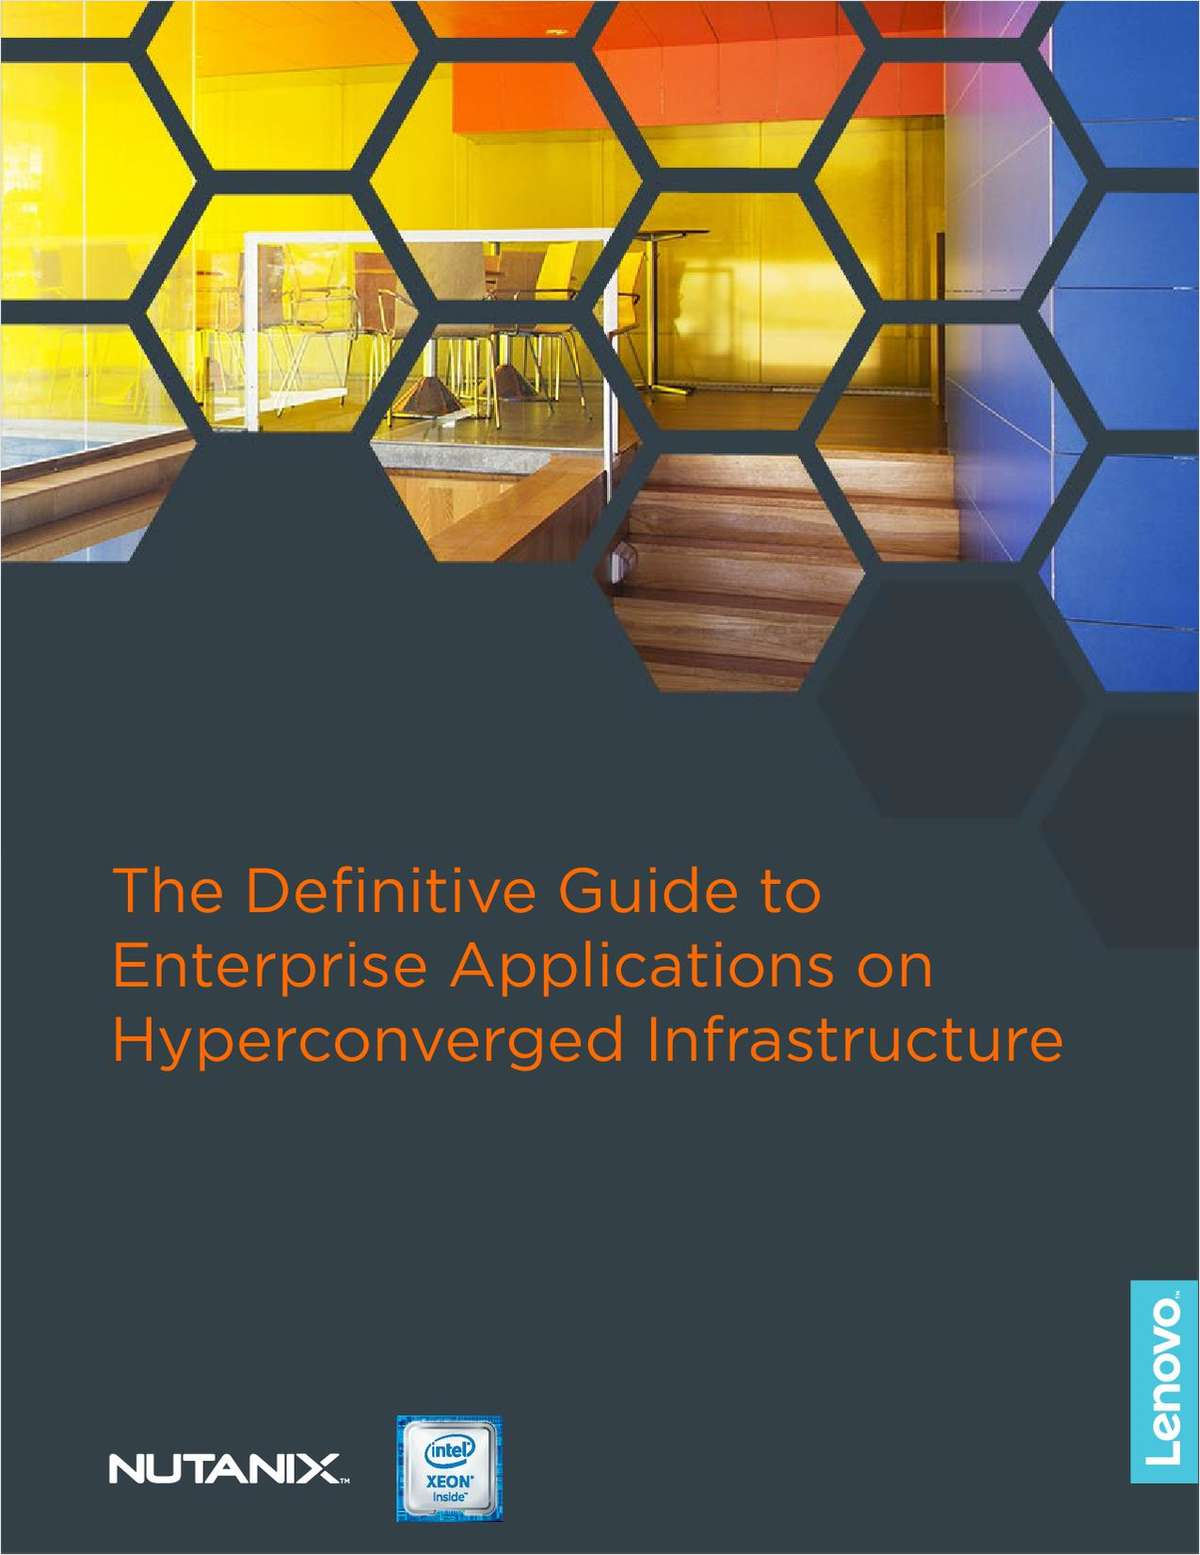 The Definitive Guide to Enterprise Applications on Hyperconverged Infrastructure